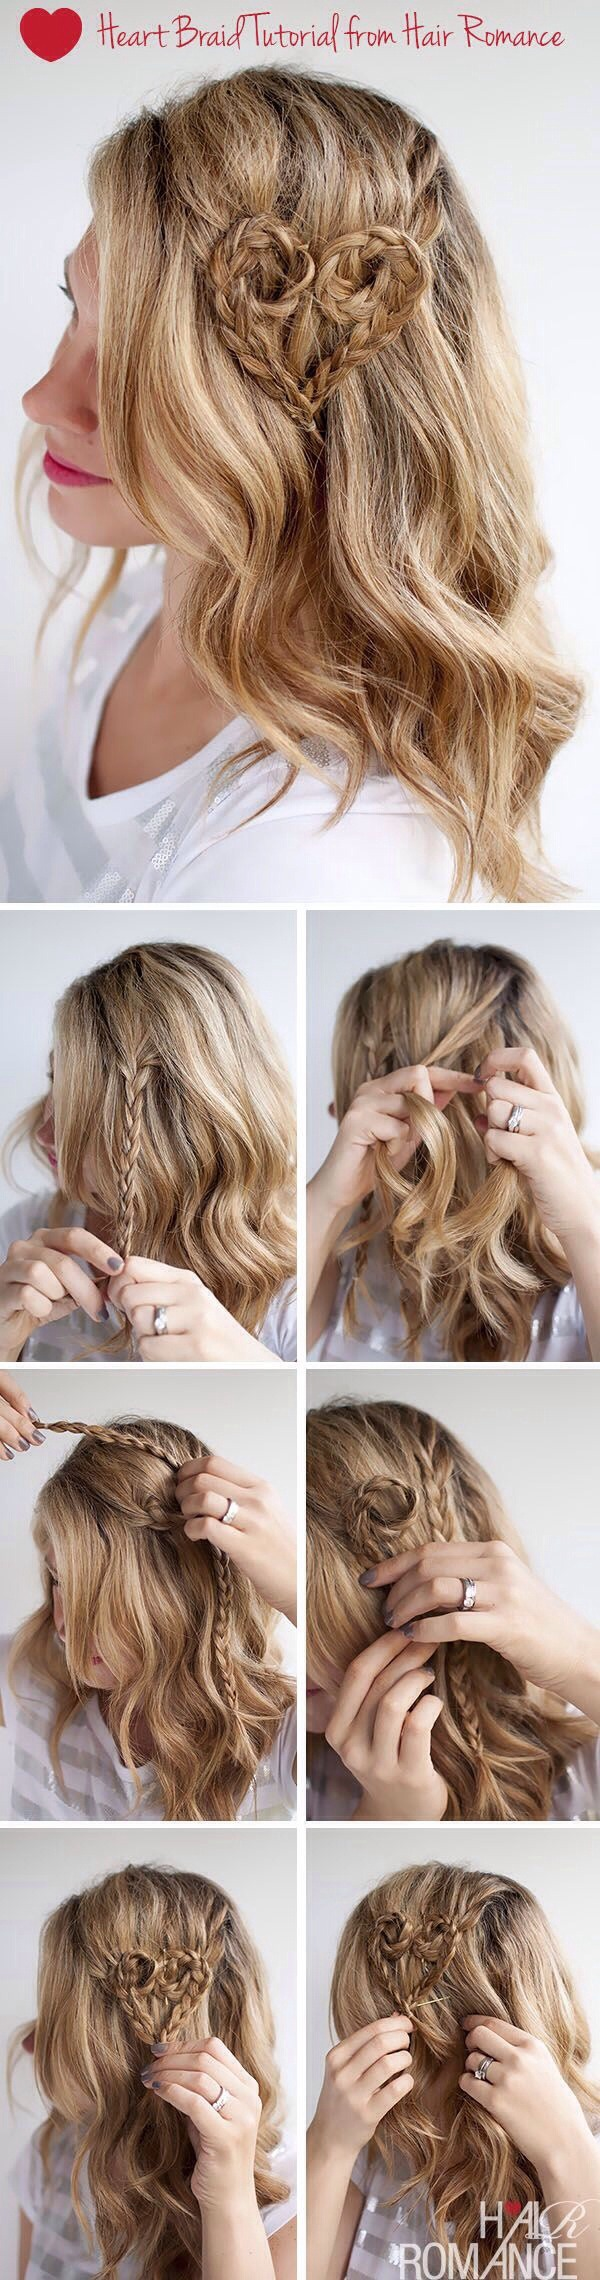 Popular Many Of Us Are Now Ready To Welcome 2016 With Some Very Big Sounding New Years Resolutions  So Why Not Try These 5 Easy And Cute Hairstyles For The Gym To Make Us Look And Feel Great While We Start To Take Action Towards Achieving